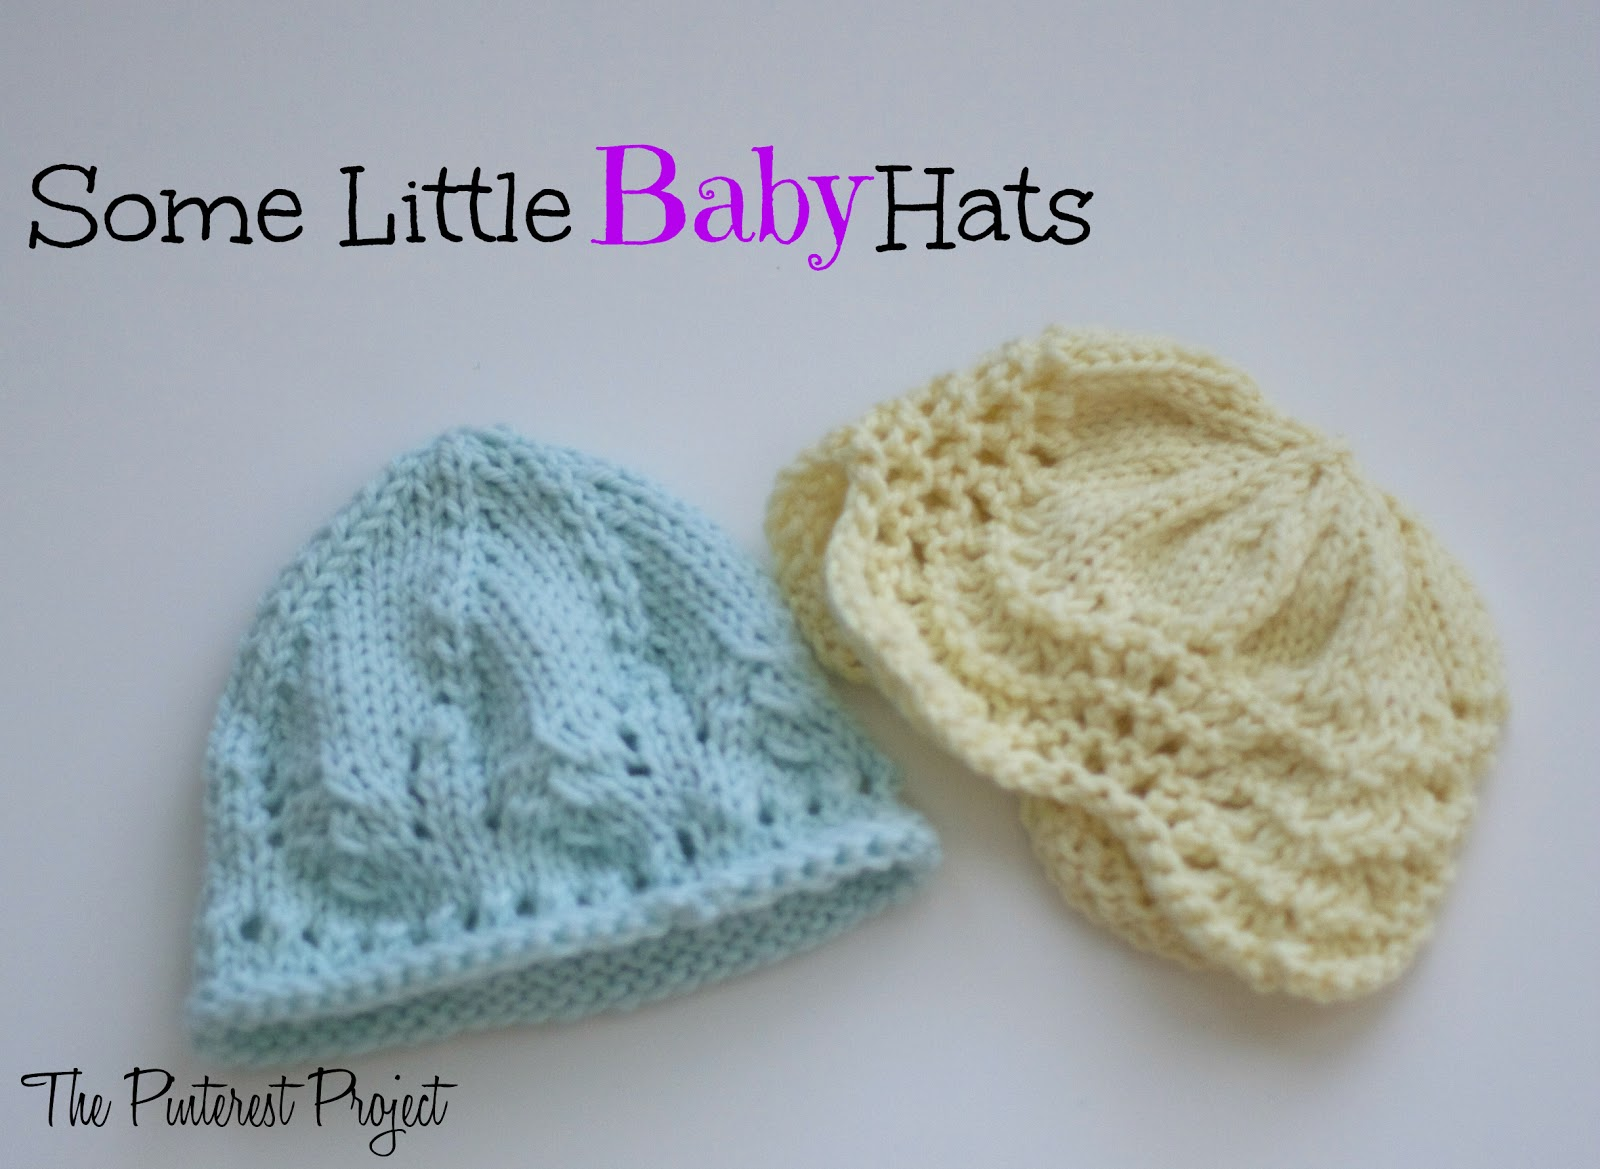 Knit Baby Hat Pattern Pinterest : Knitted baby hat patterns pinterest crafts